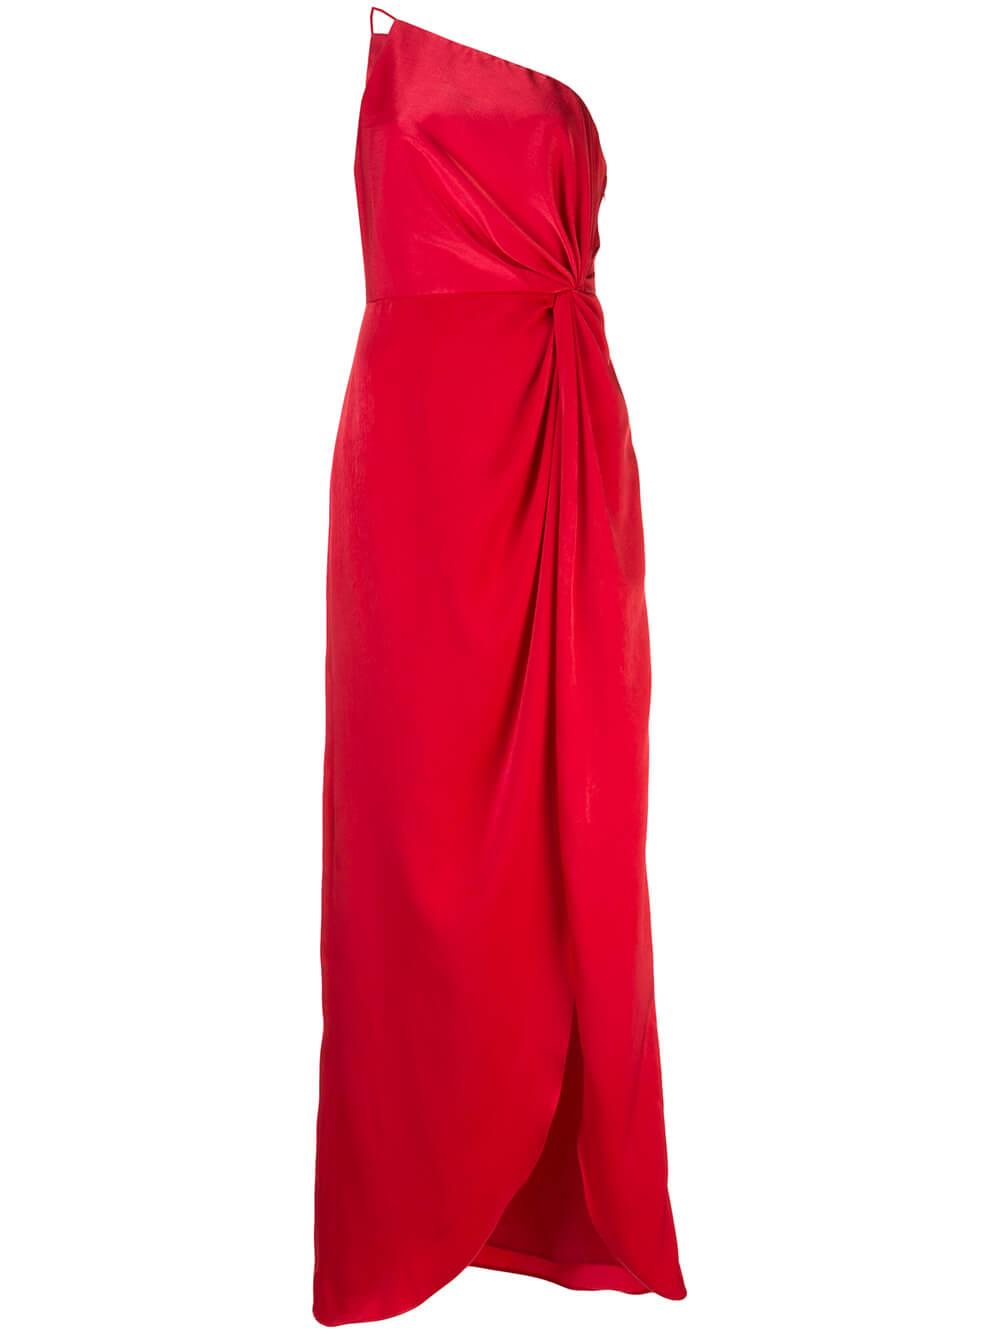 Draped One Shoulder Dress